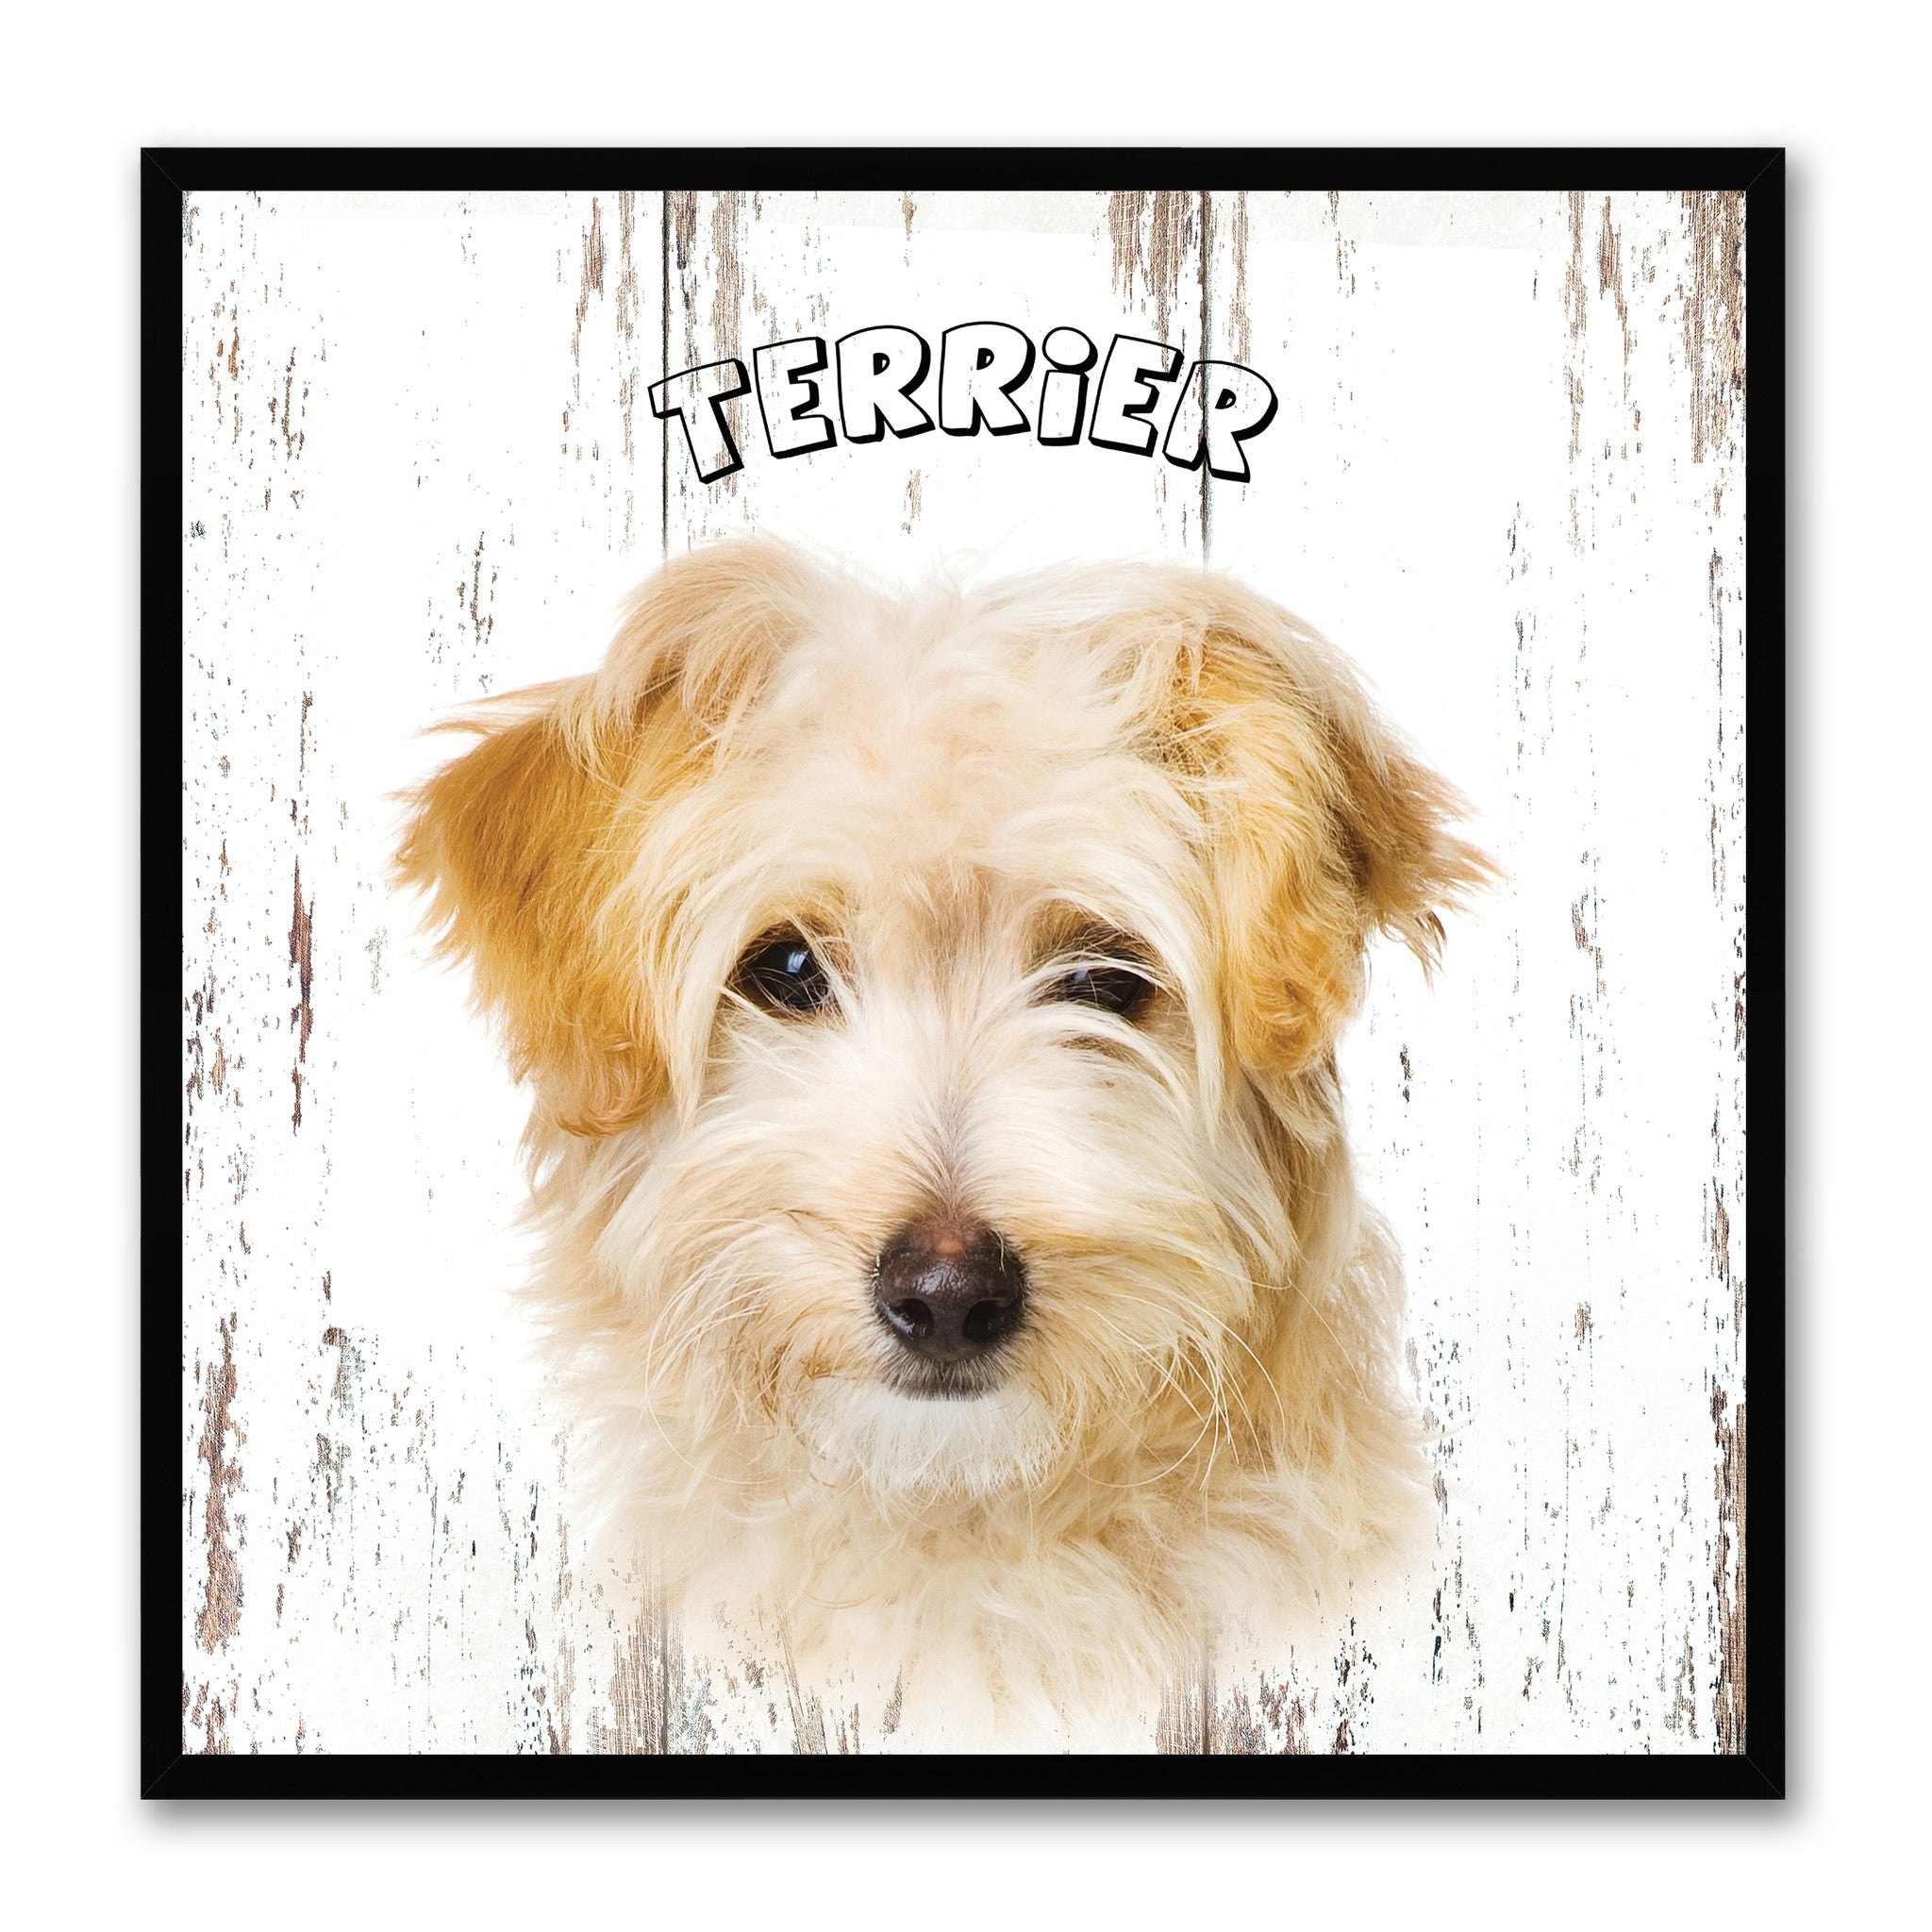 Terrier Dog Canvas Print Picture Frame Gift Home Decor Wall Art Decoration